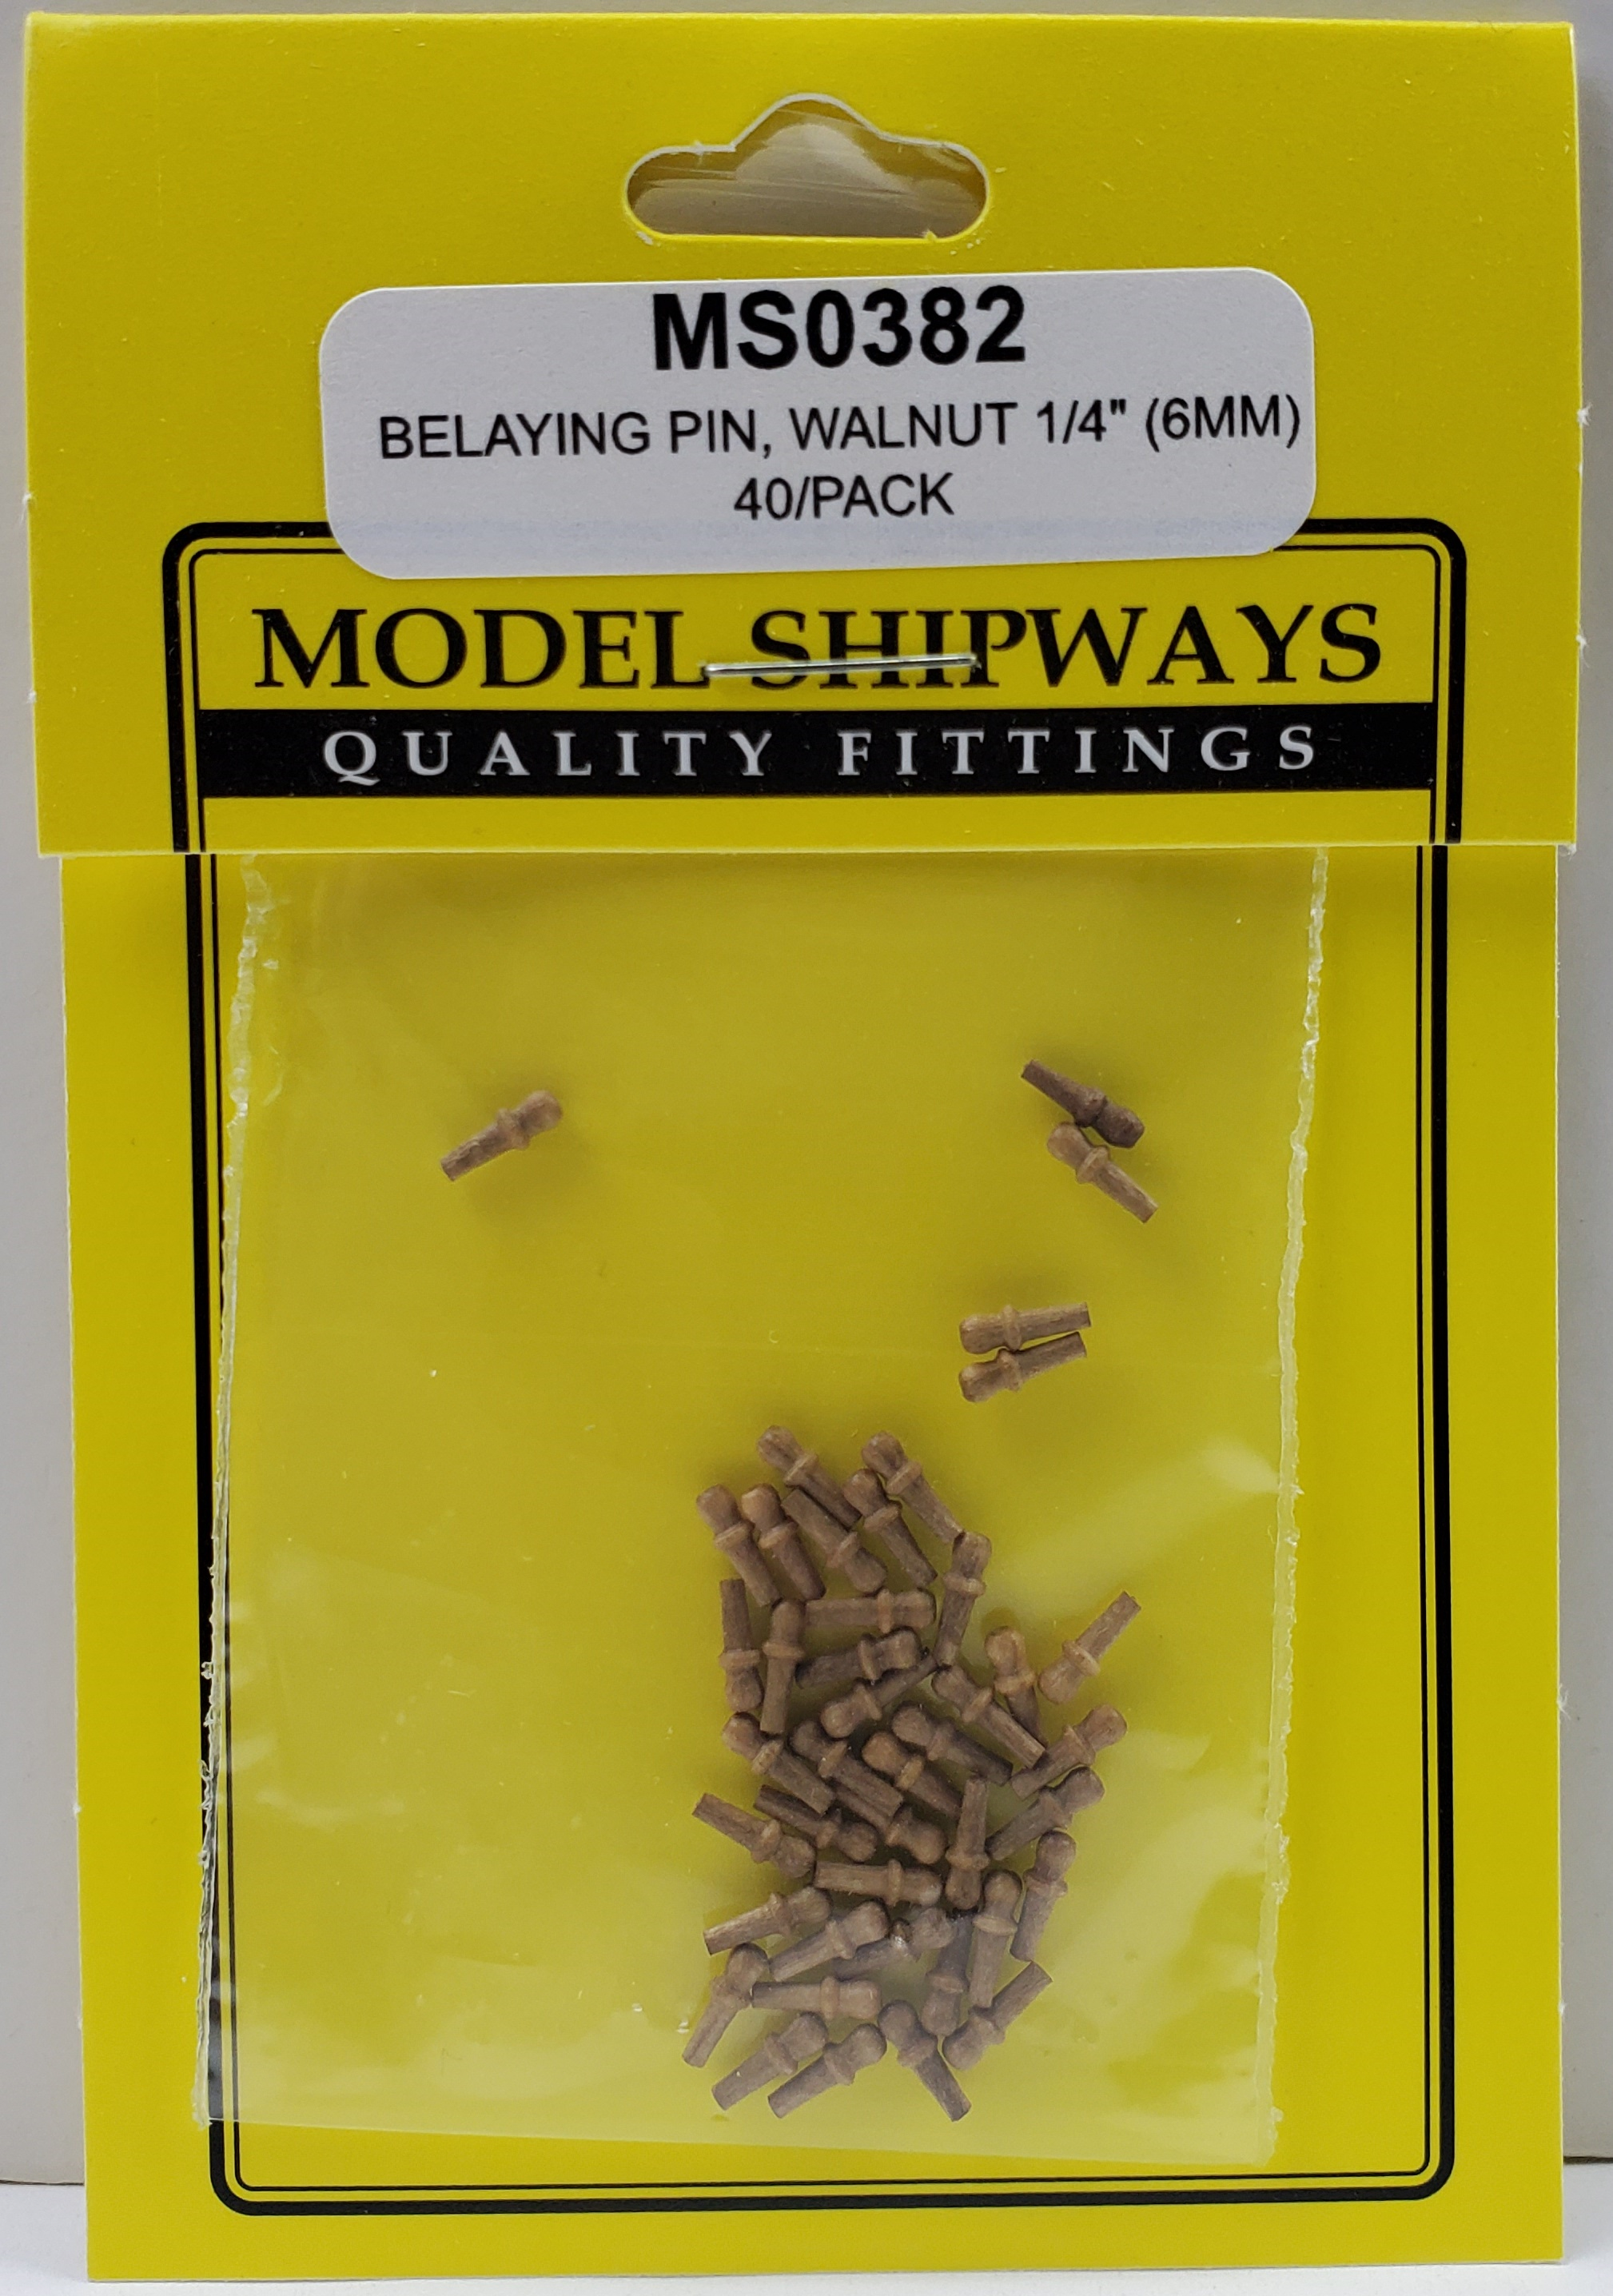 Model Shipways Belaying Pins, Walnut 1/4